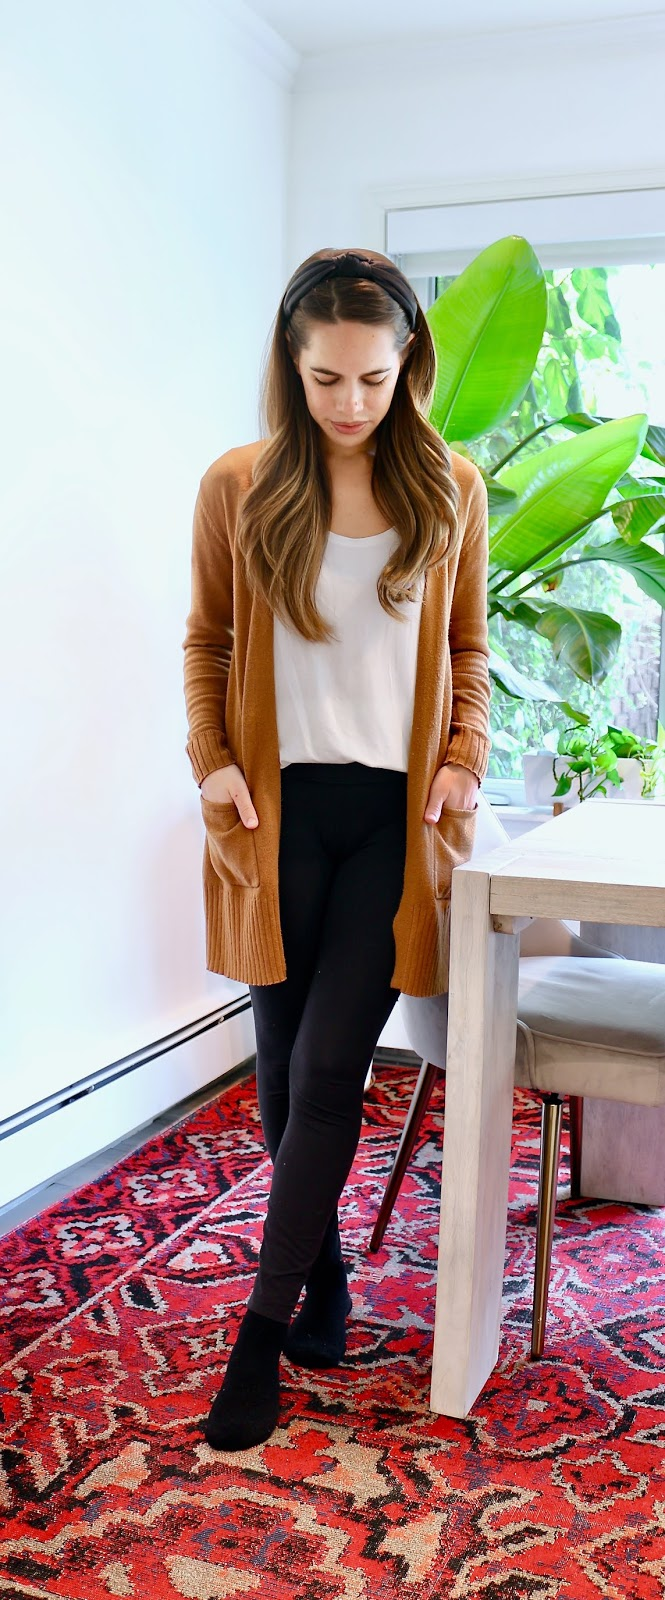 Jules in Flats - Cognac Cardigan + White Tee + Leggings (Easy Work from Home Outfit)